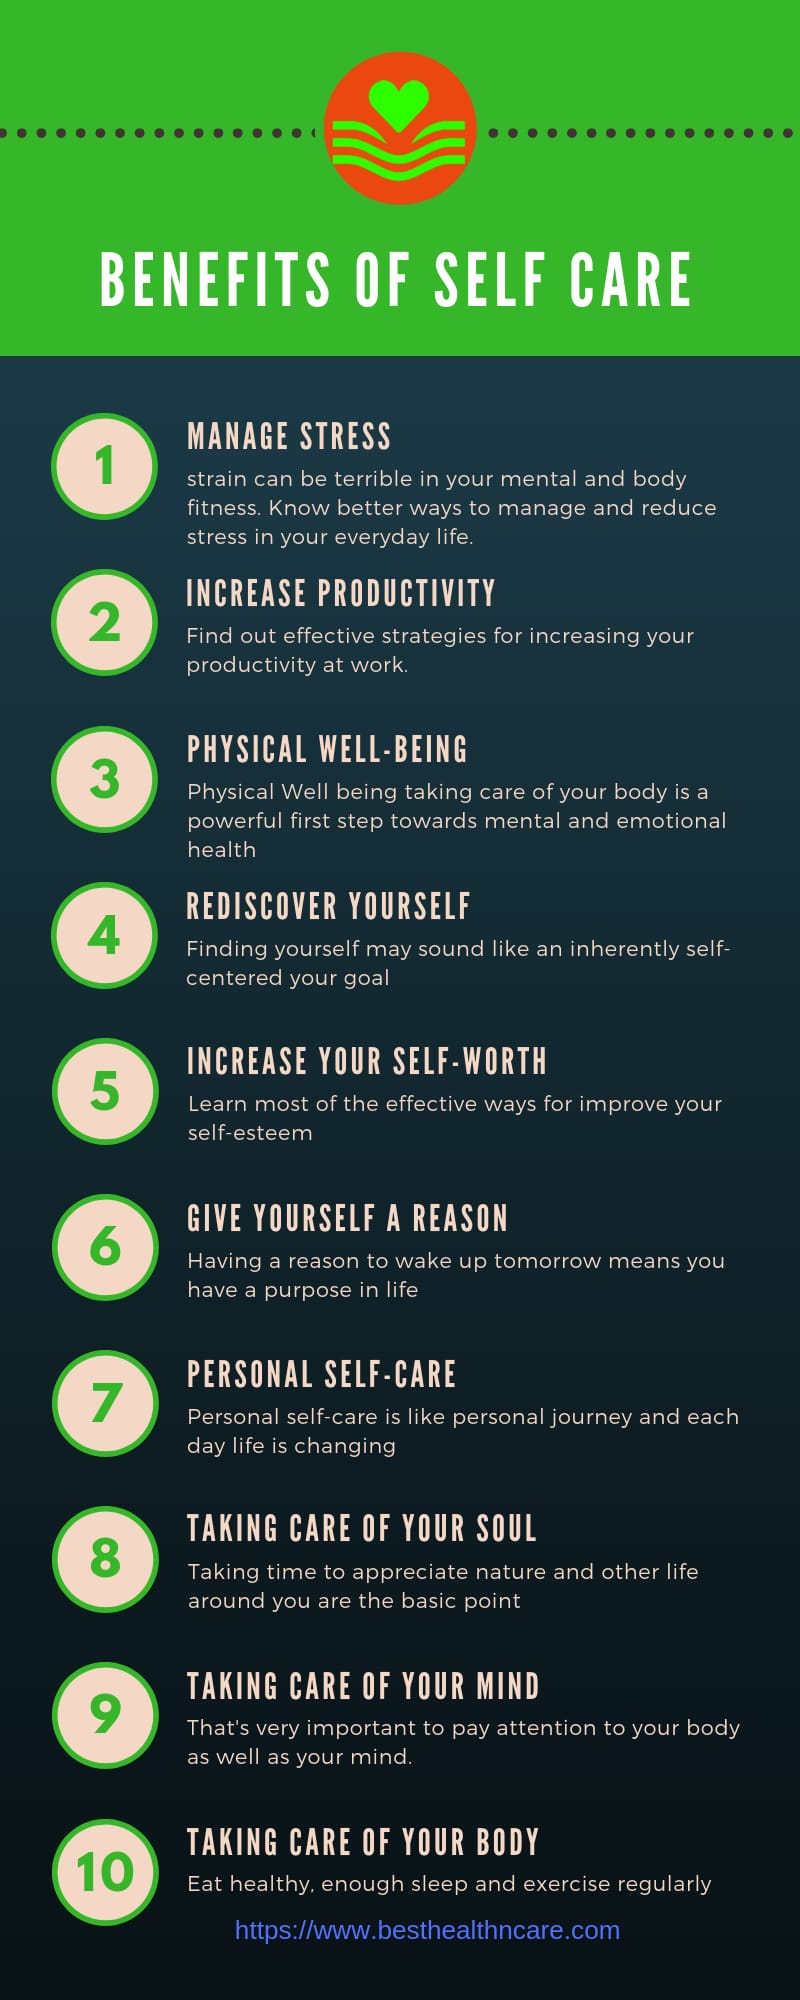 Benefits of Self Care